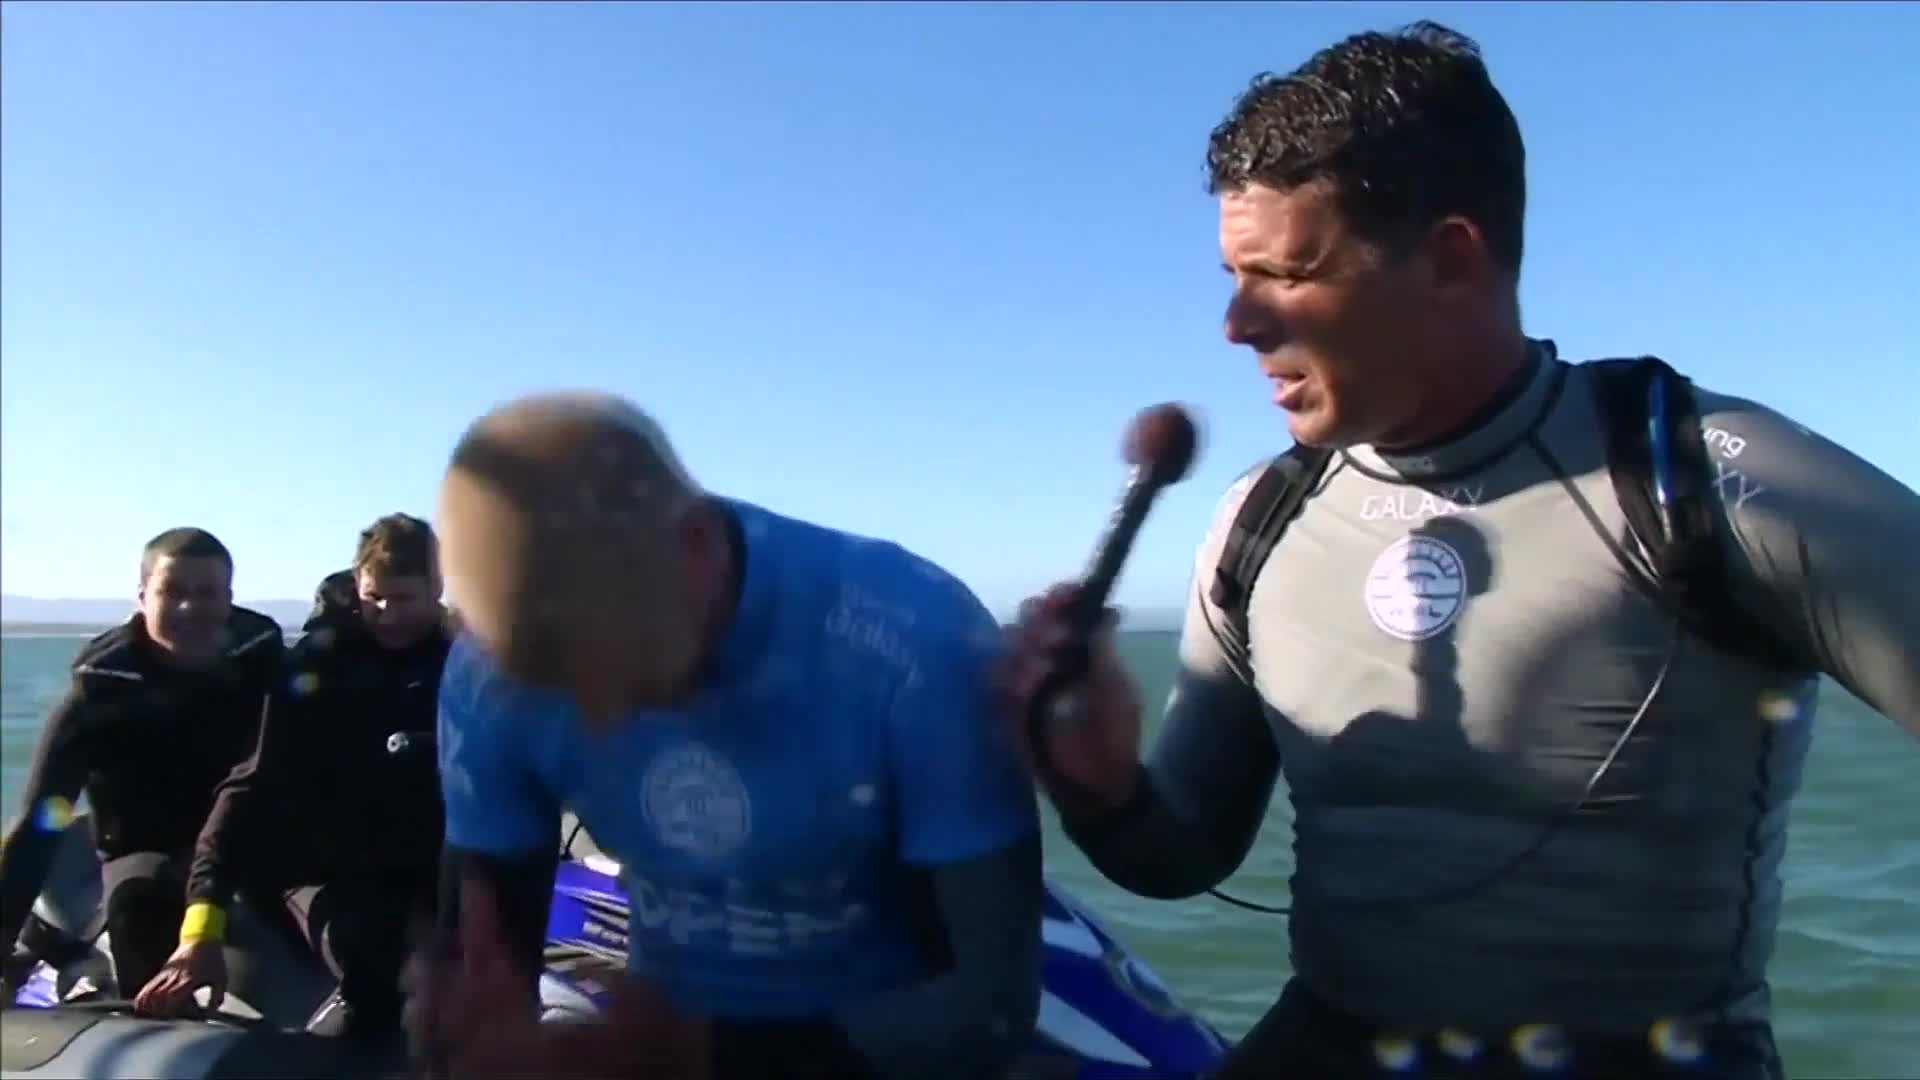 Mick Fanning to return to J-Bay where a shark shocked him